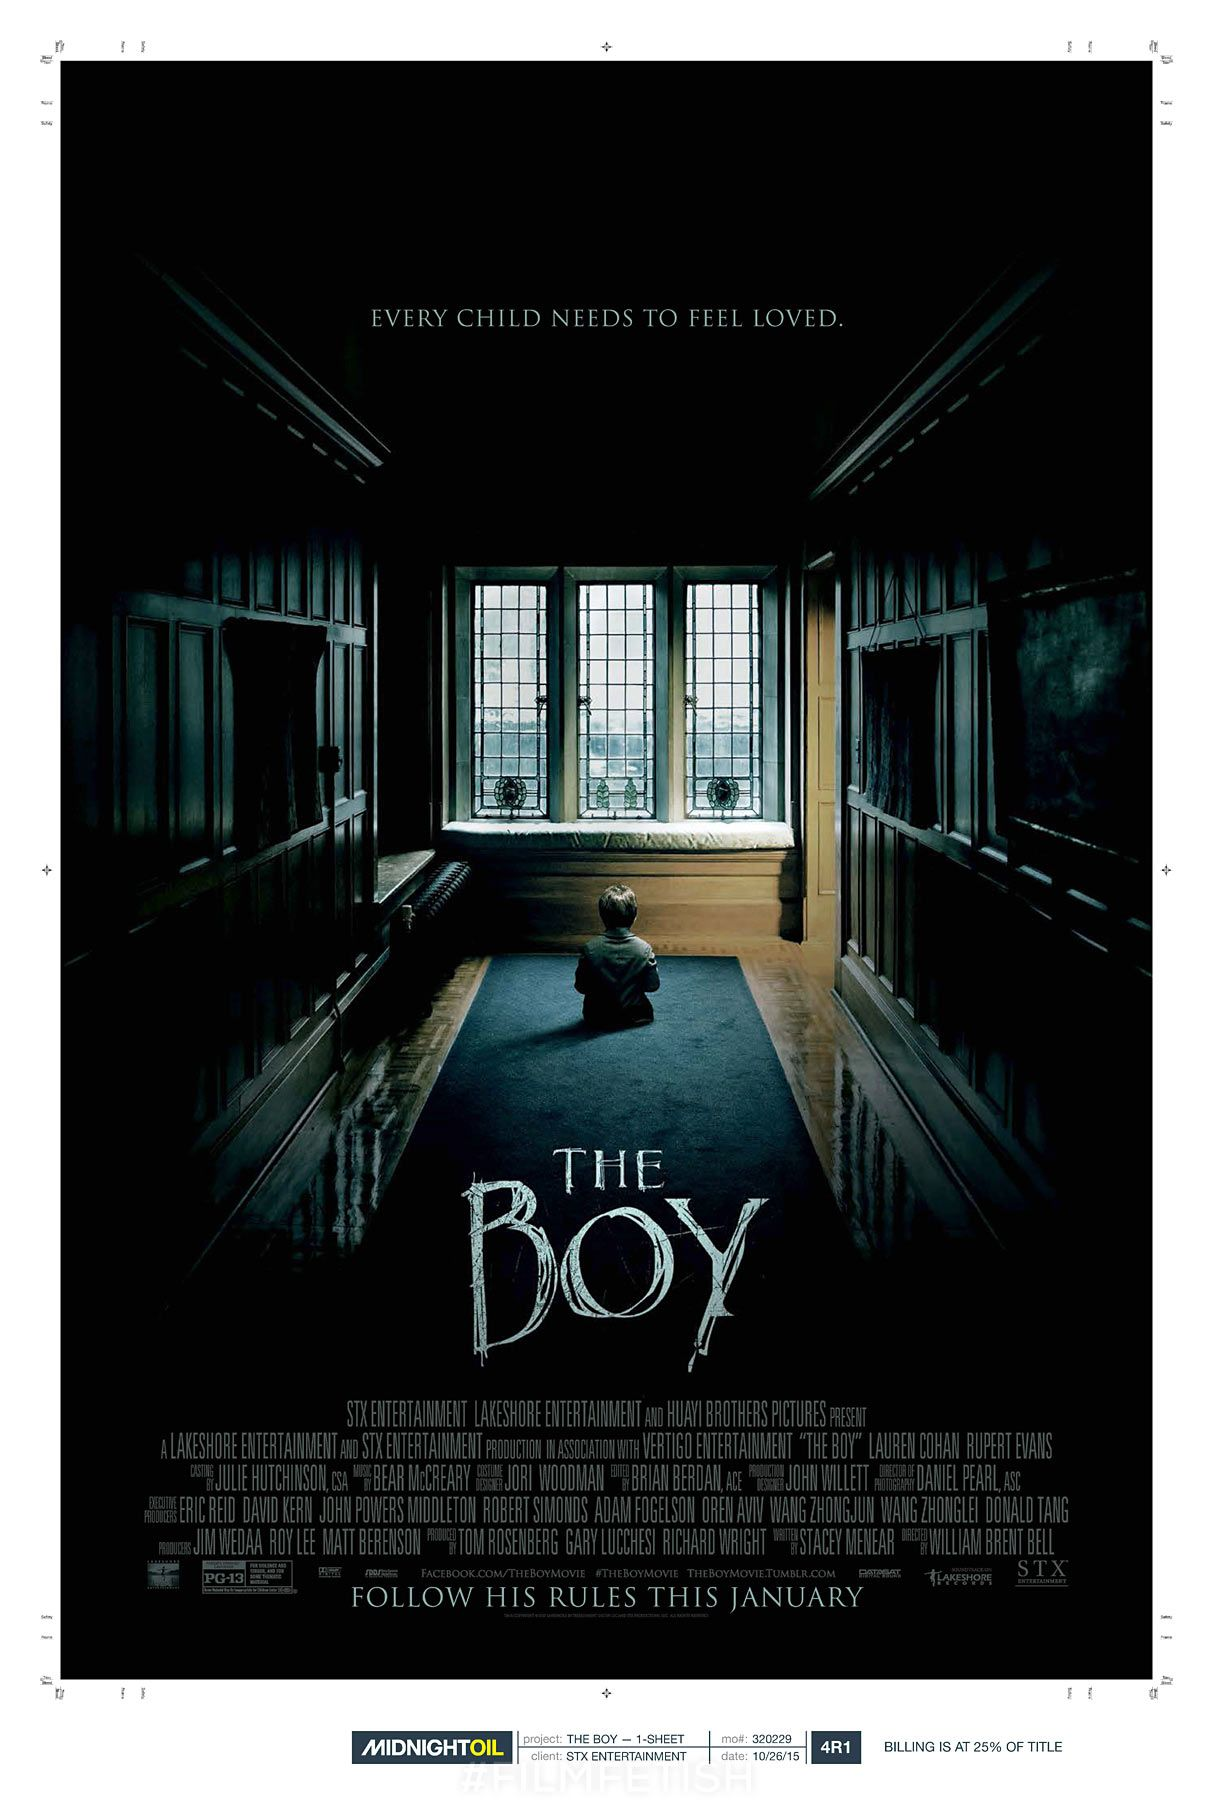 Theboymovie Images And Preview For The Walking Dead Lauren Cohan S Upcoming Horror The Boy Movies For Boys Free Movies Online Full Movies Online Free